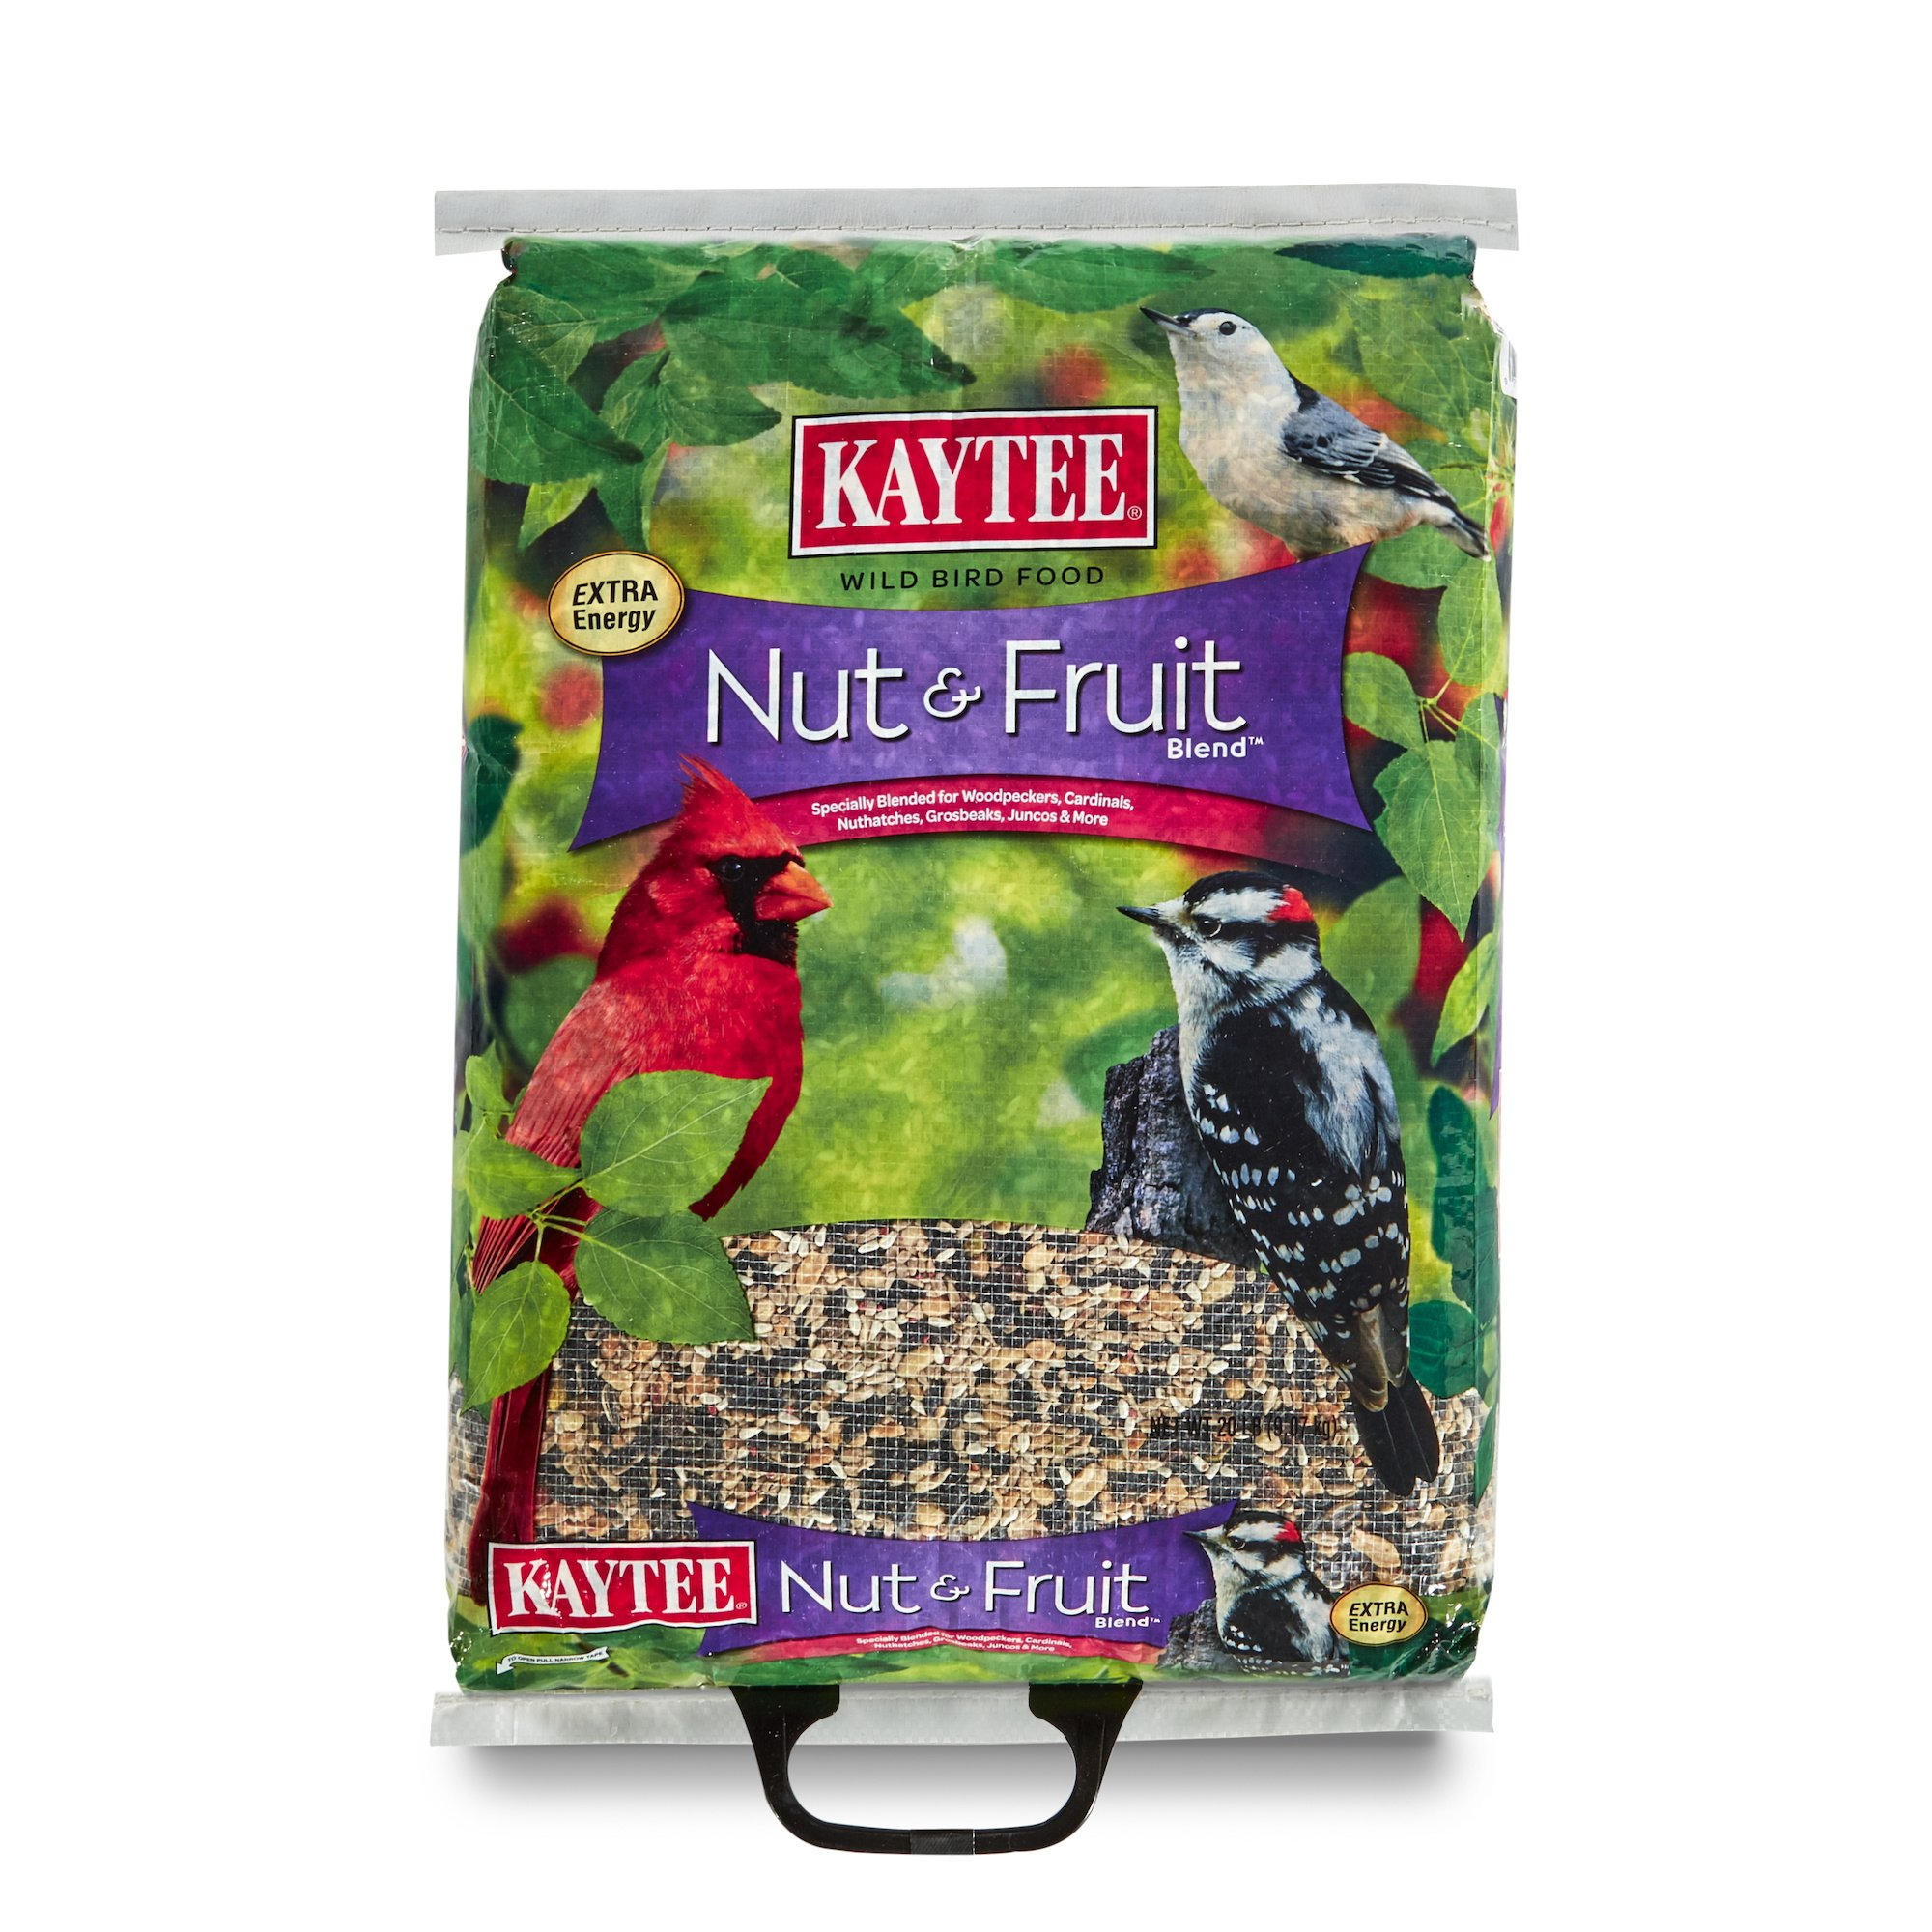 Kaytee Nut and Fruit Blend, 20-Pound by Kaytee